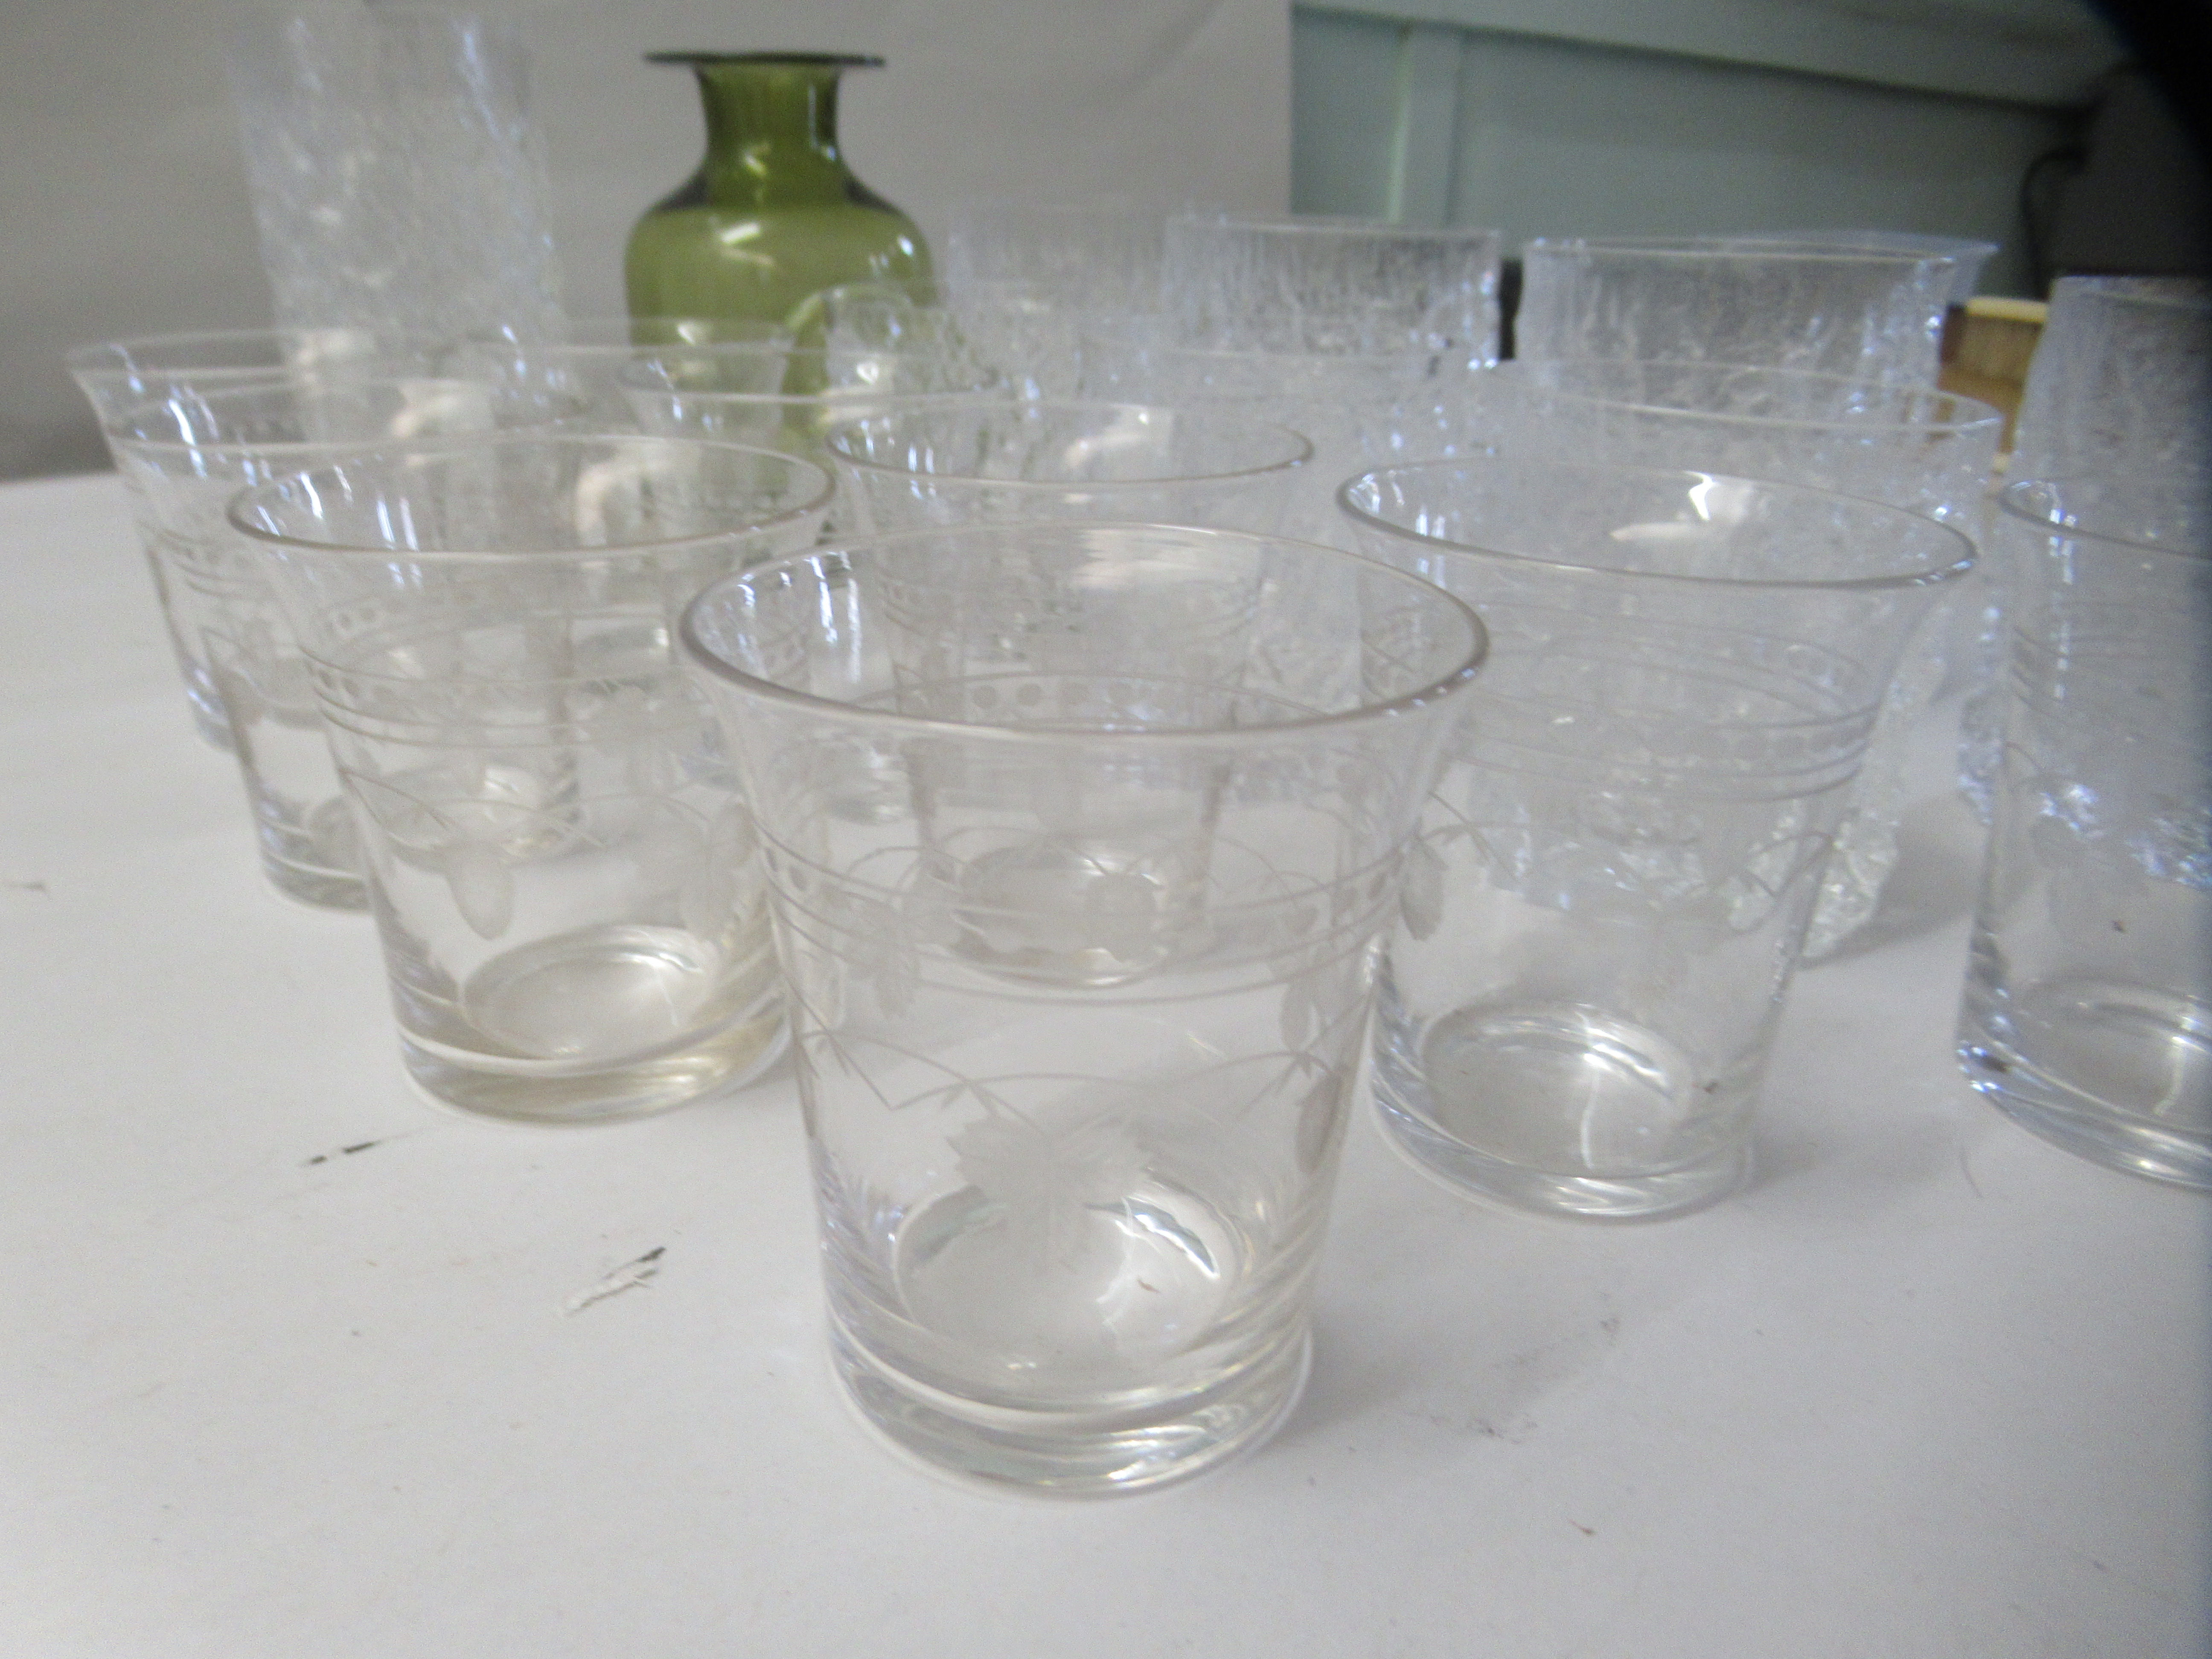 Bark effect Whitefriars cordial and other drinking glasses - Image 2 of 6